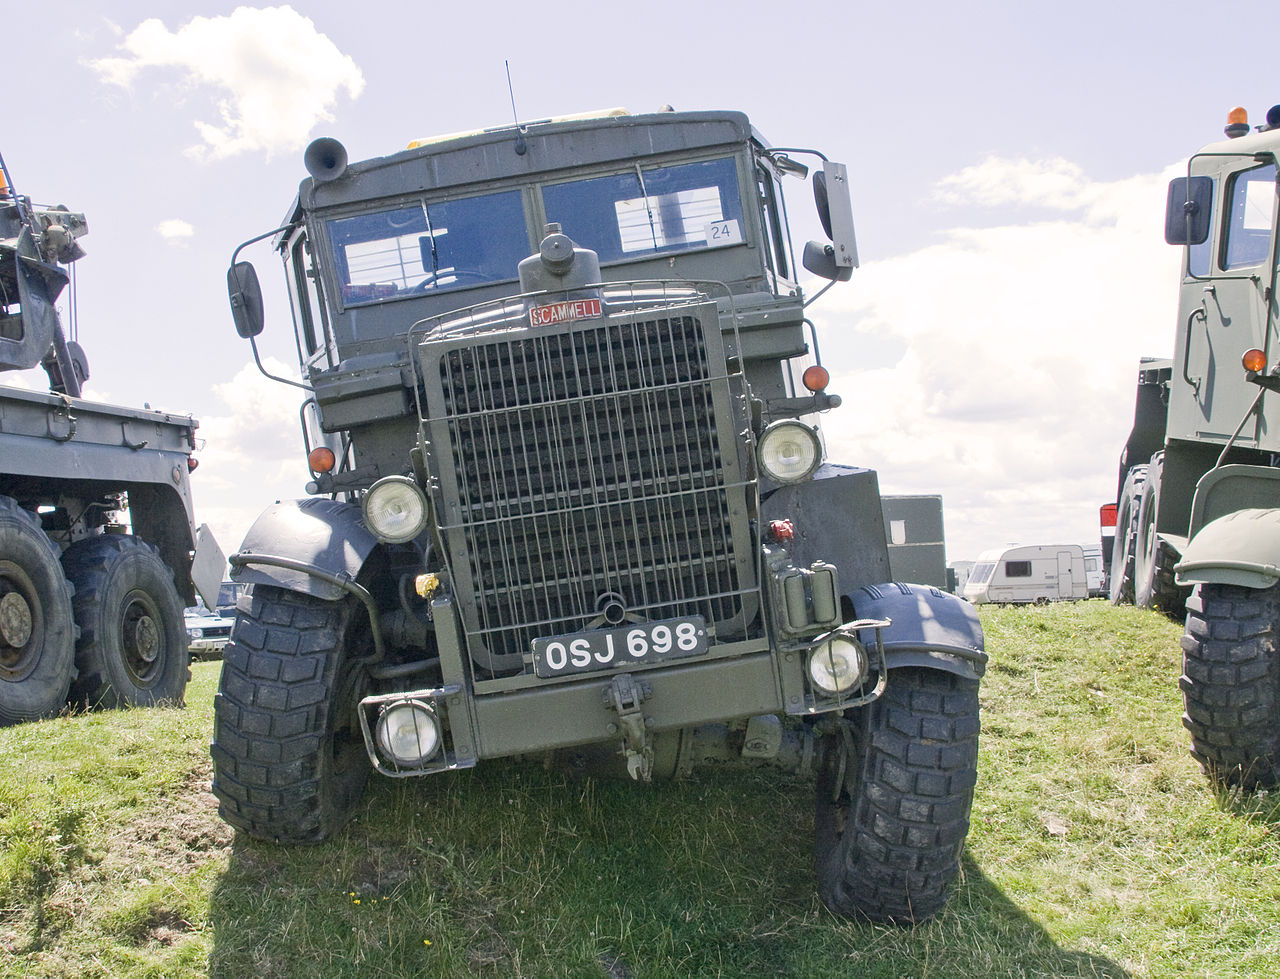 File:Vintage off road military truck, steam rally ...